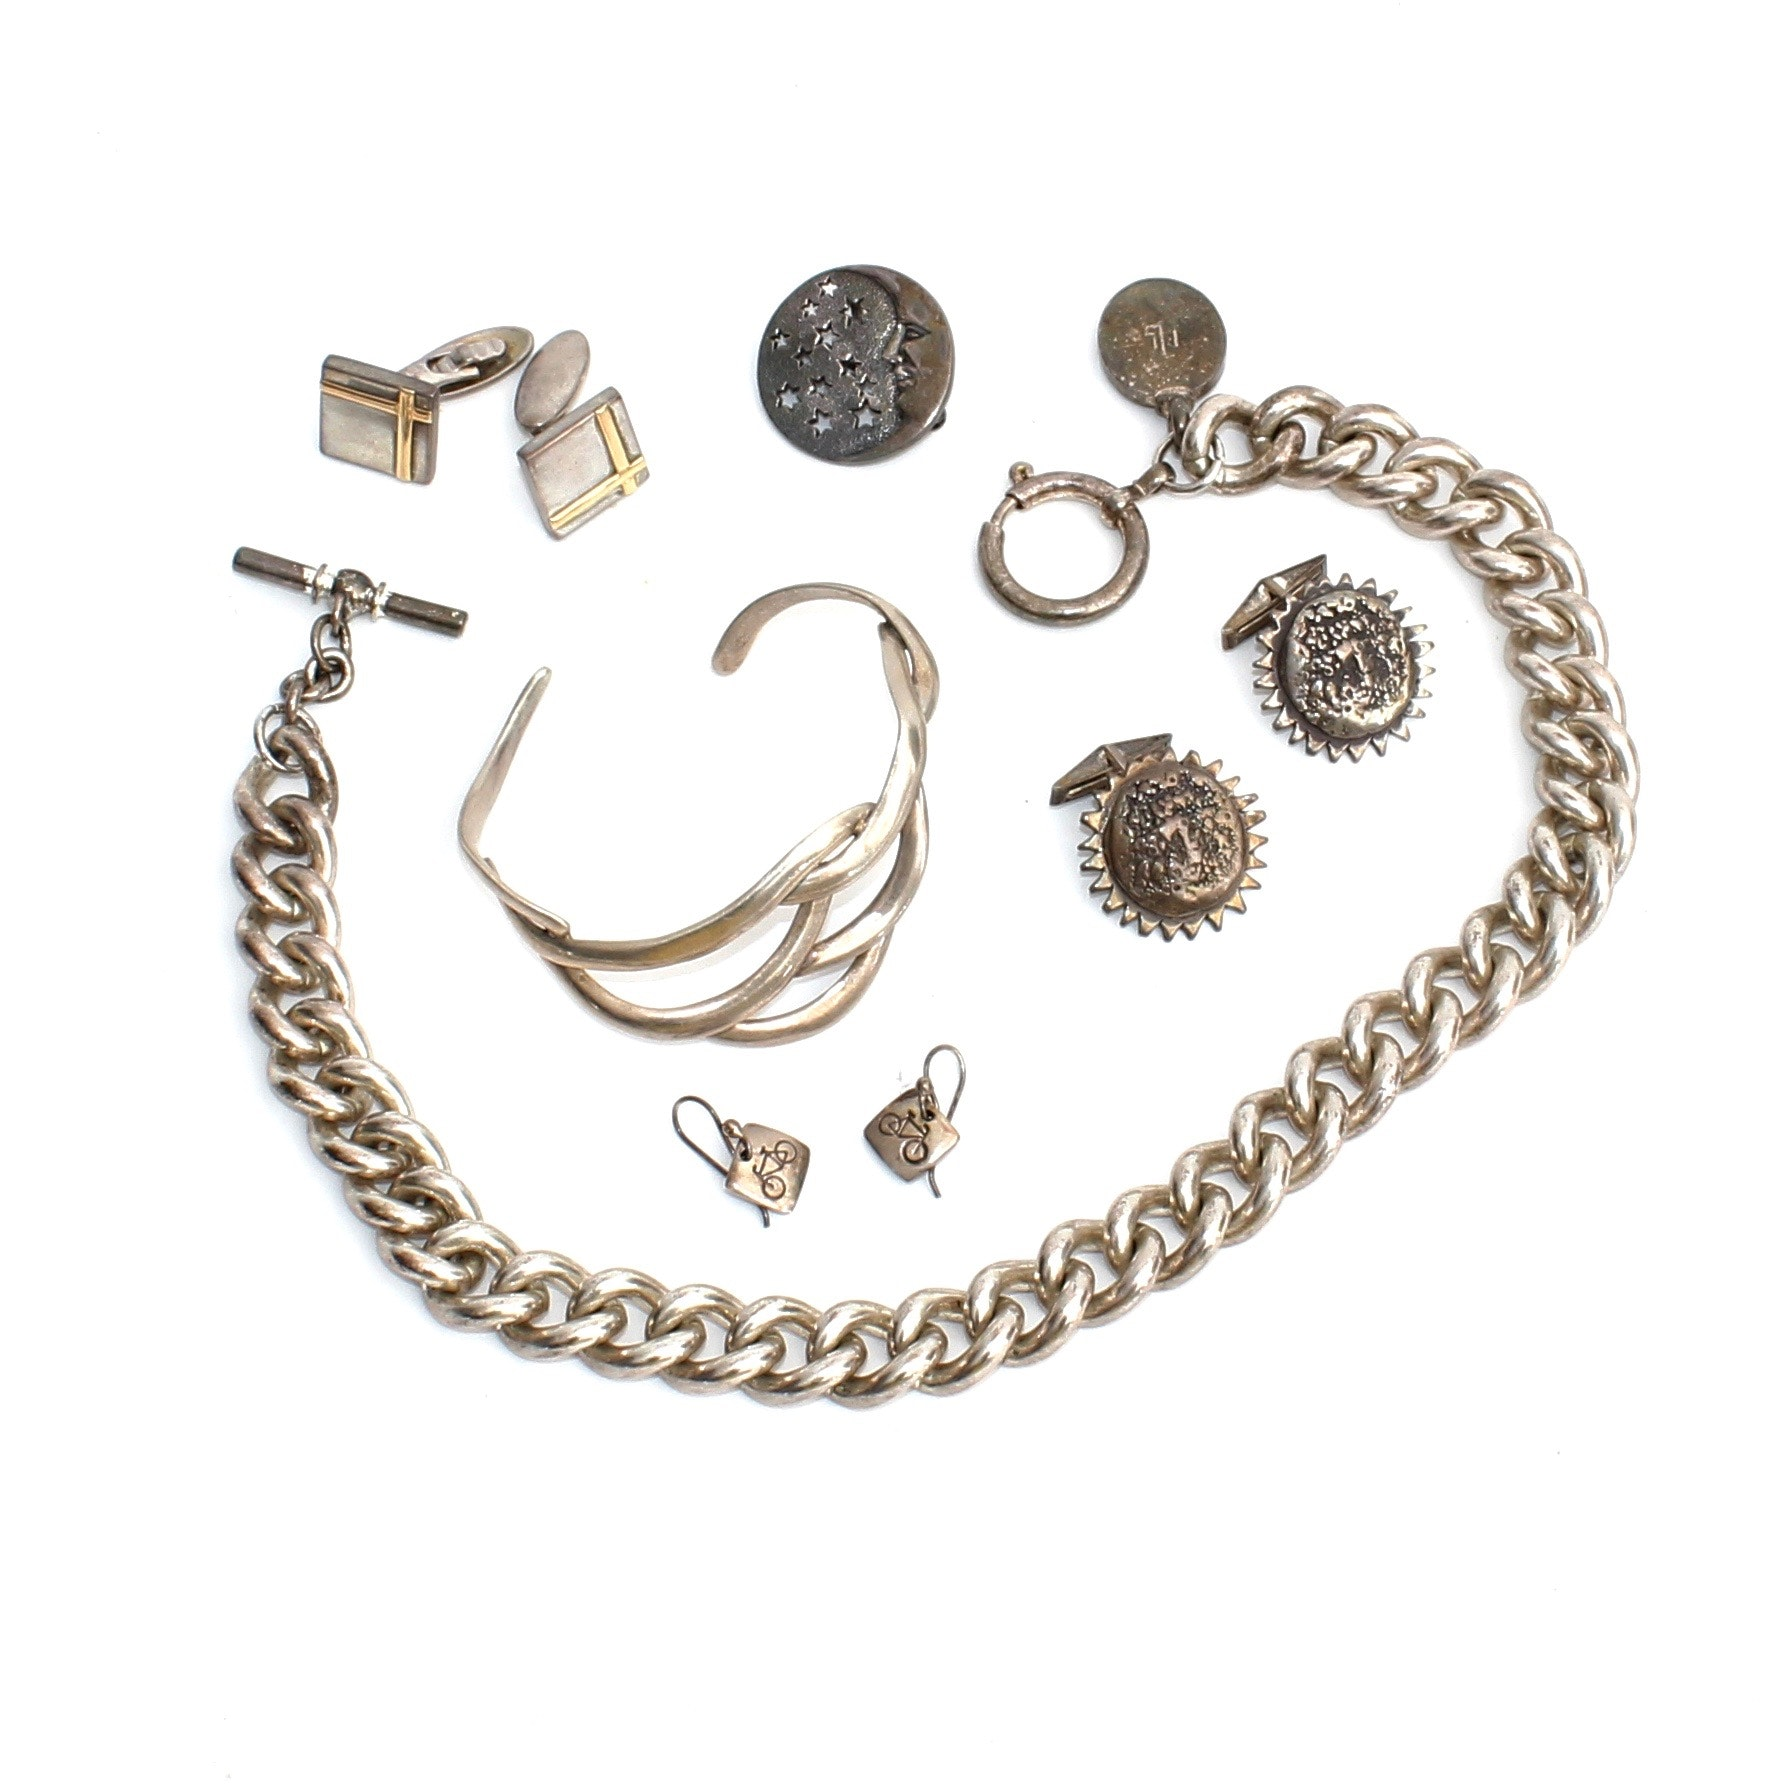 Sterling Silver and Other Assorted Jewelry